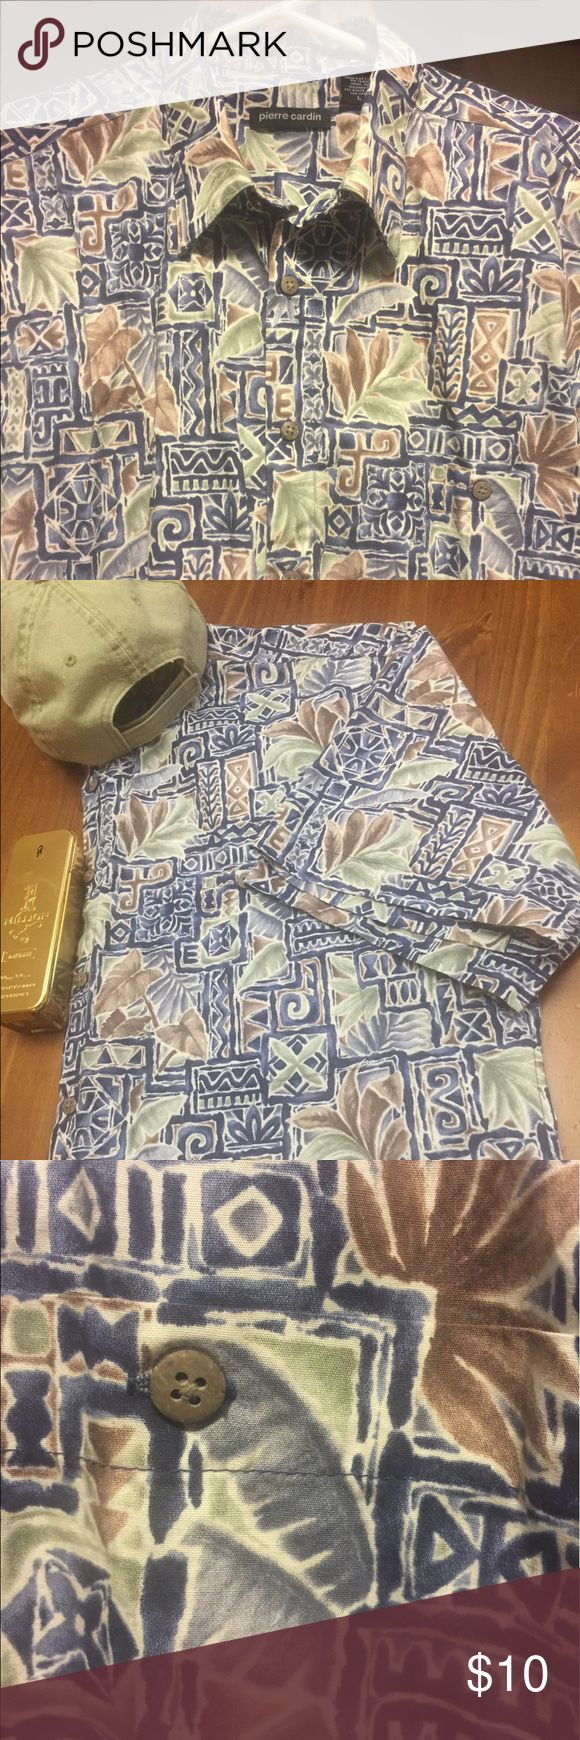 100% cotton shirt Pierre Cardin 100% cotton printed shirt. 7 button down in front, 2 extra buttons for replacement. Buttons are made from coconut shell. Left breast pocket with button closure. Feel good cotton shirt for that relaxing Caribbean Cruise 🚢 Pair with your favorite jeans 👖 and hat 🎩 Pierre Cardin Shirts Casual Button Down Shirts